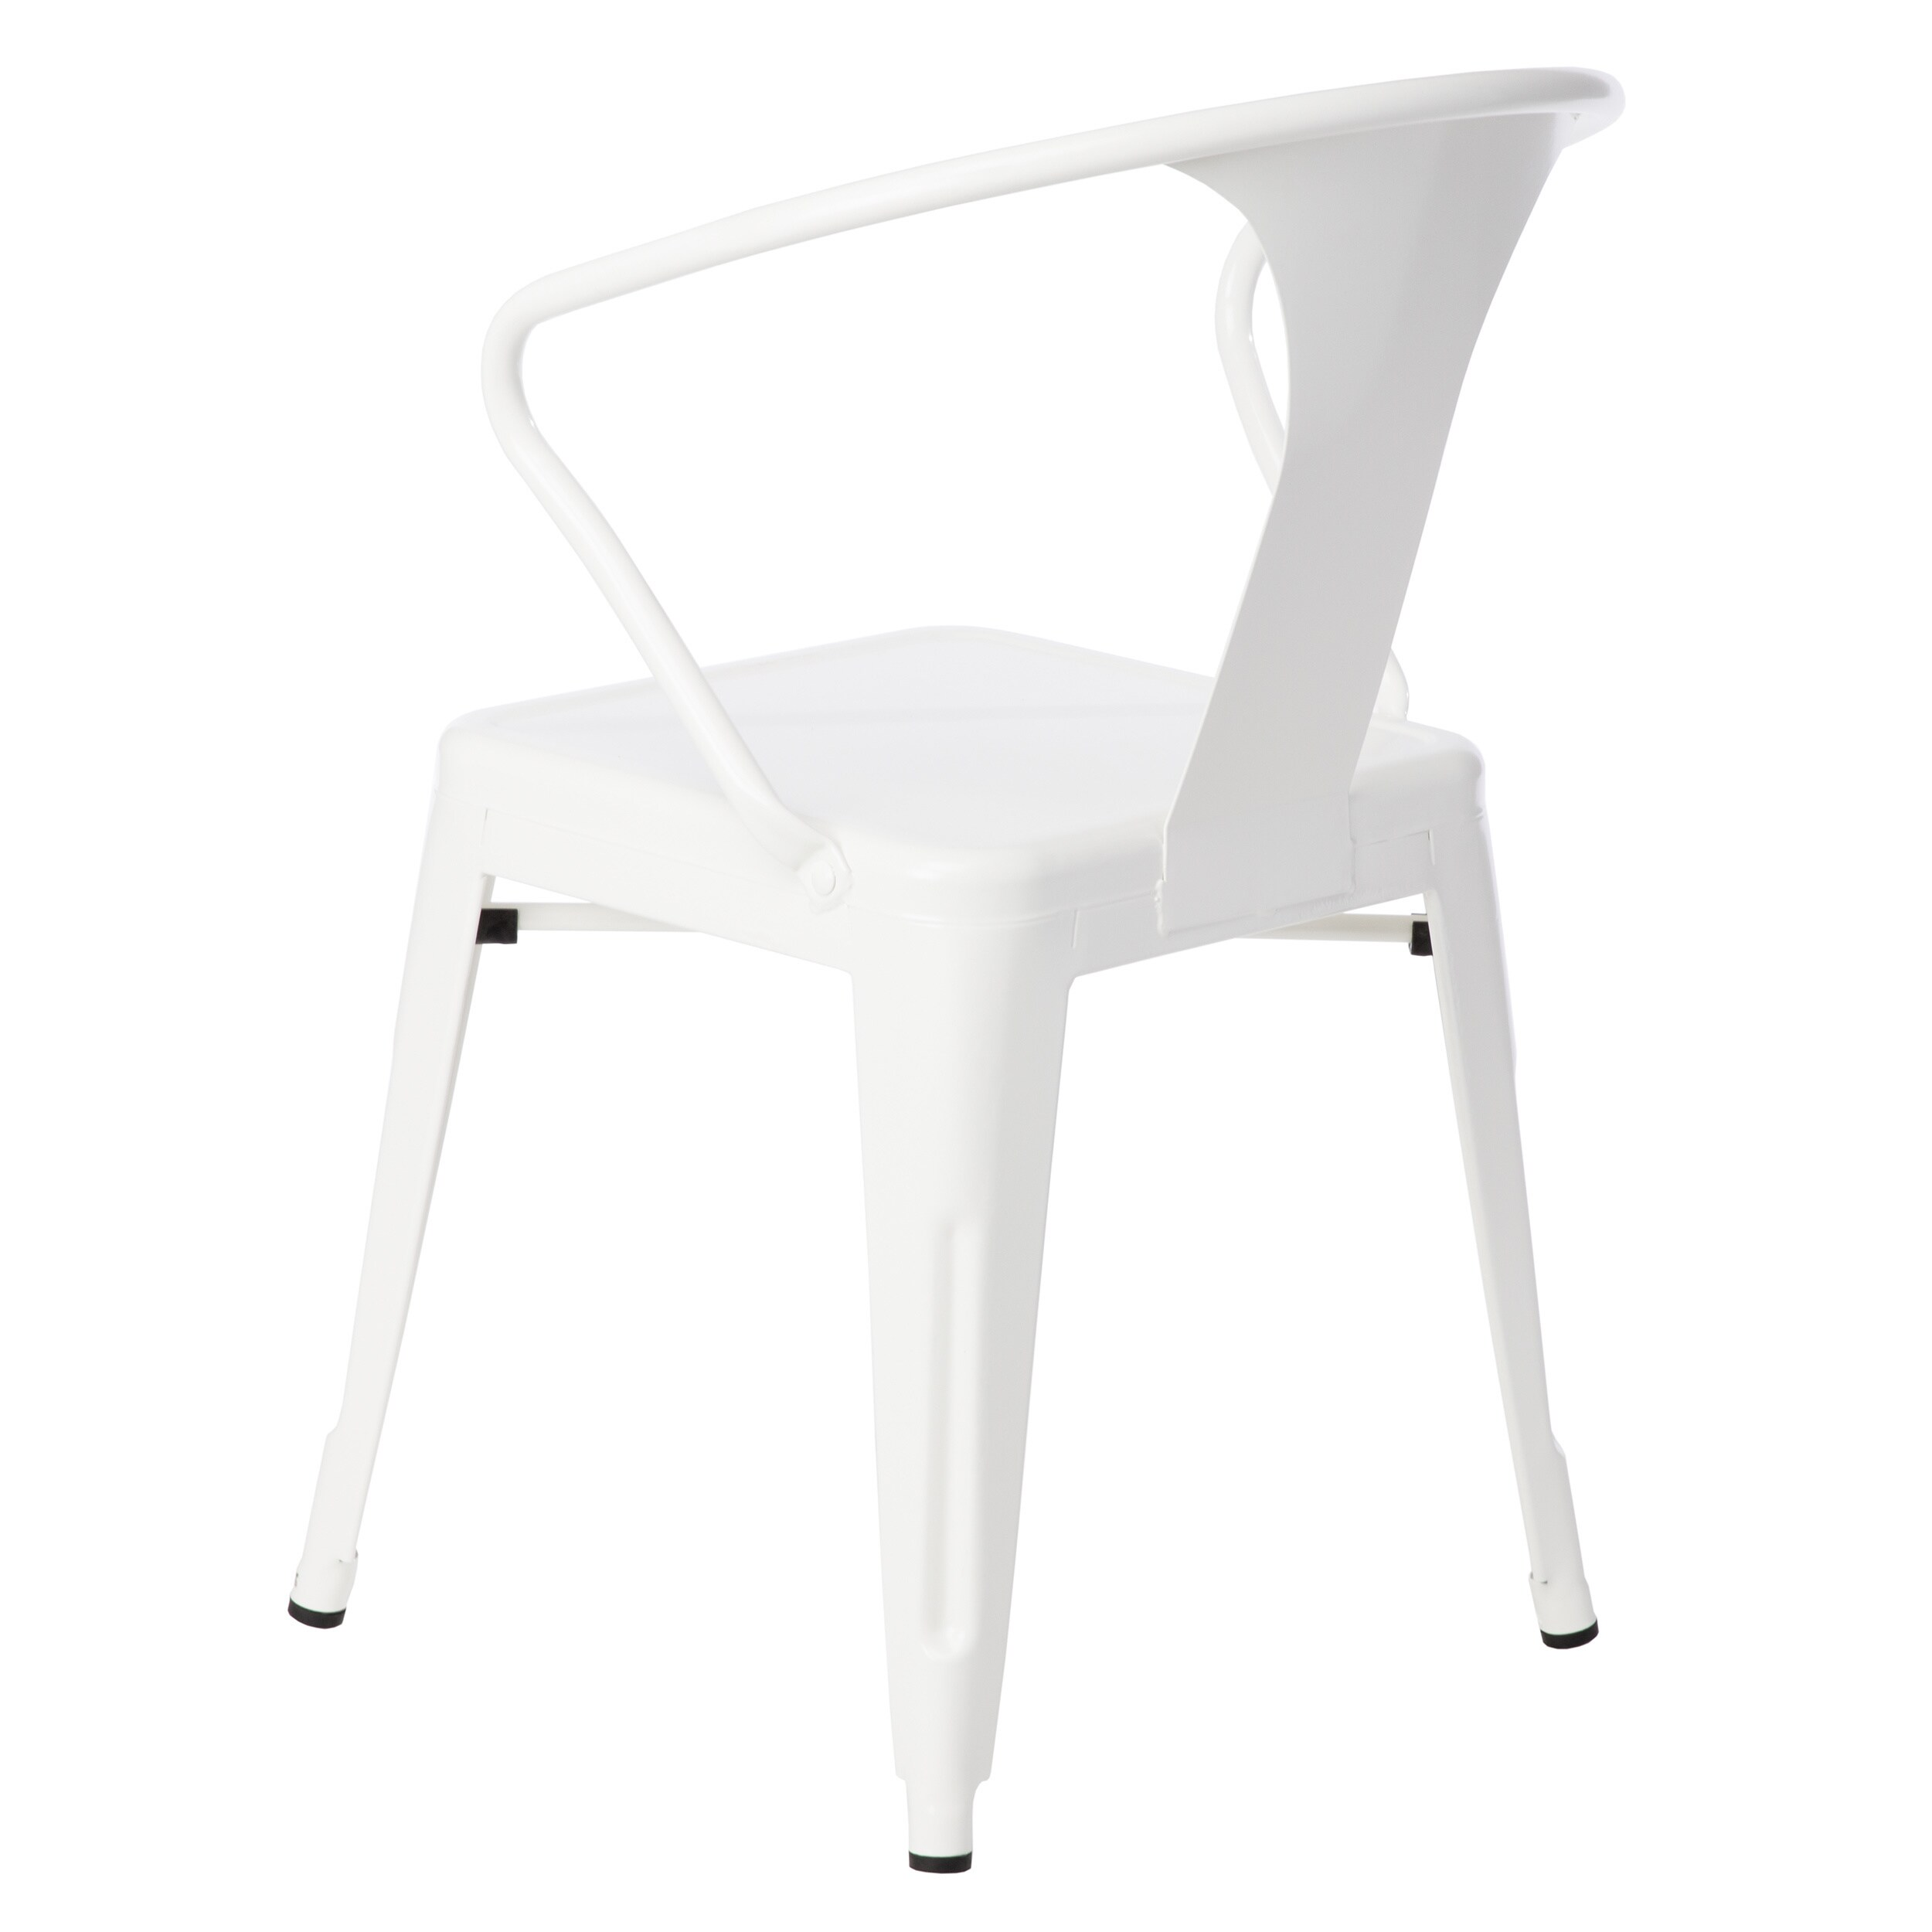 metal stacking chairs outdoor portable styling chair shop carbon loft white tabouret set of 4 free shipping today overstock com 5095636